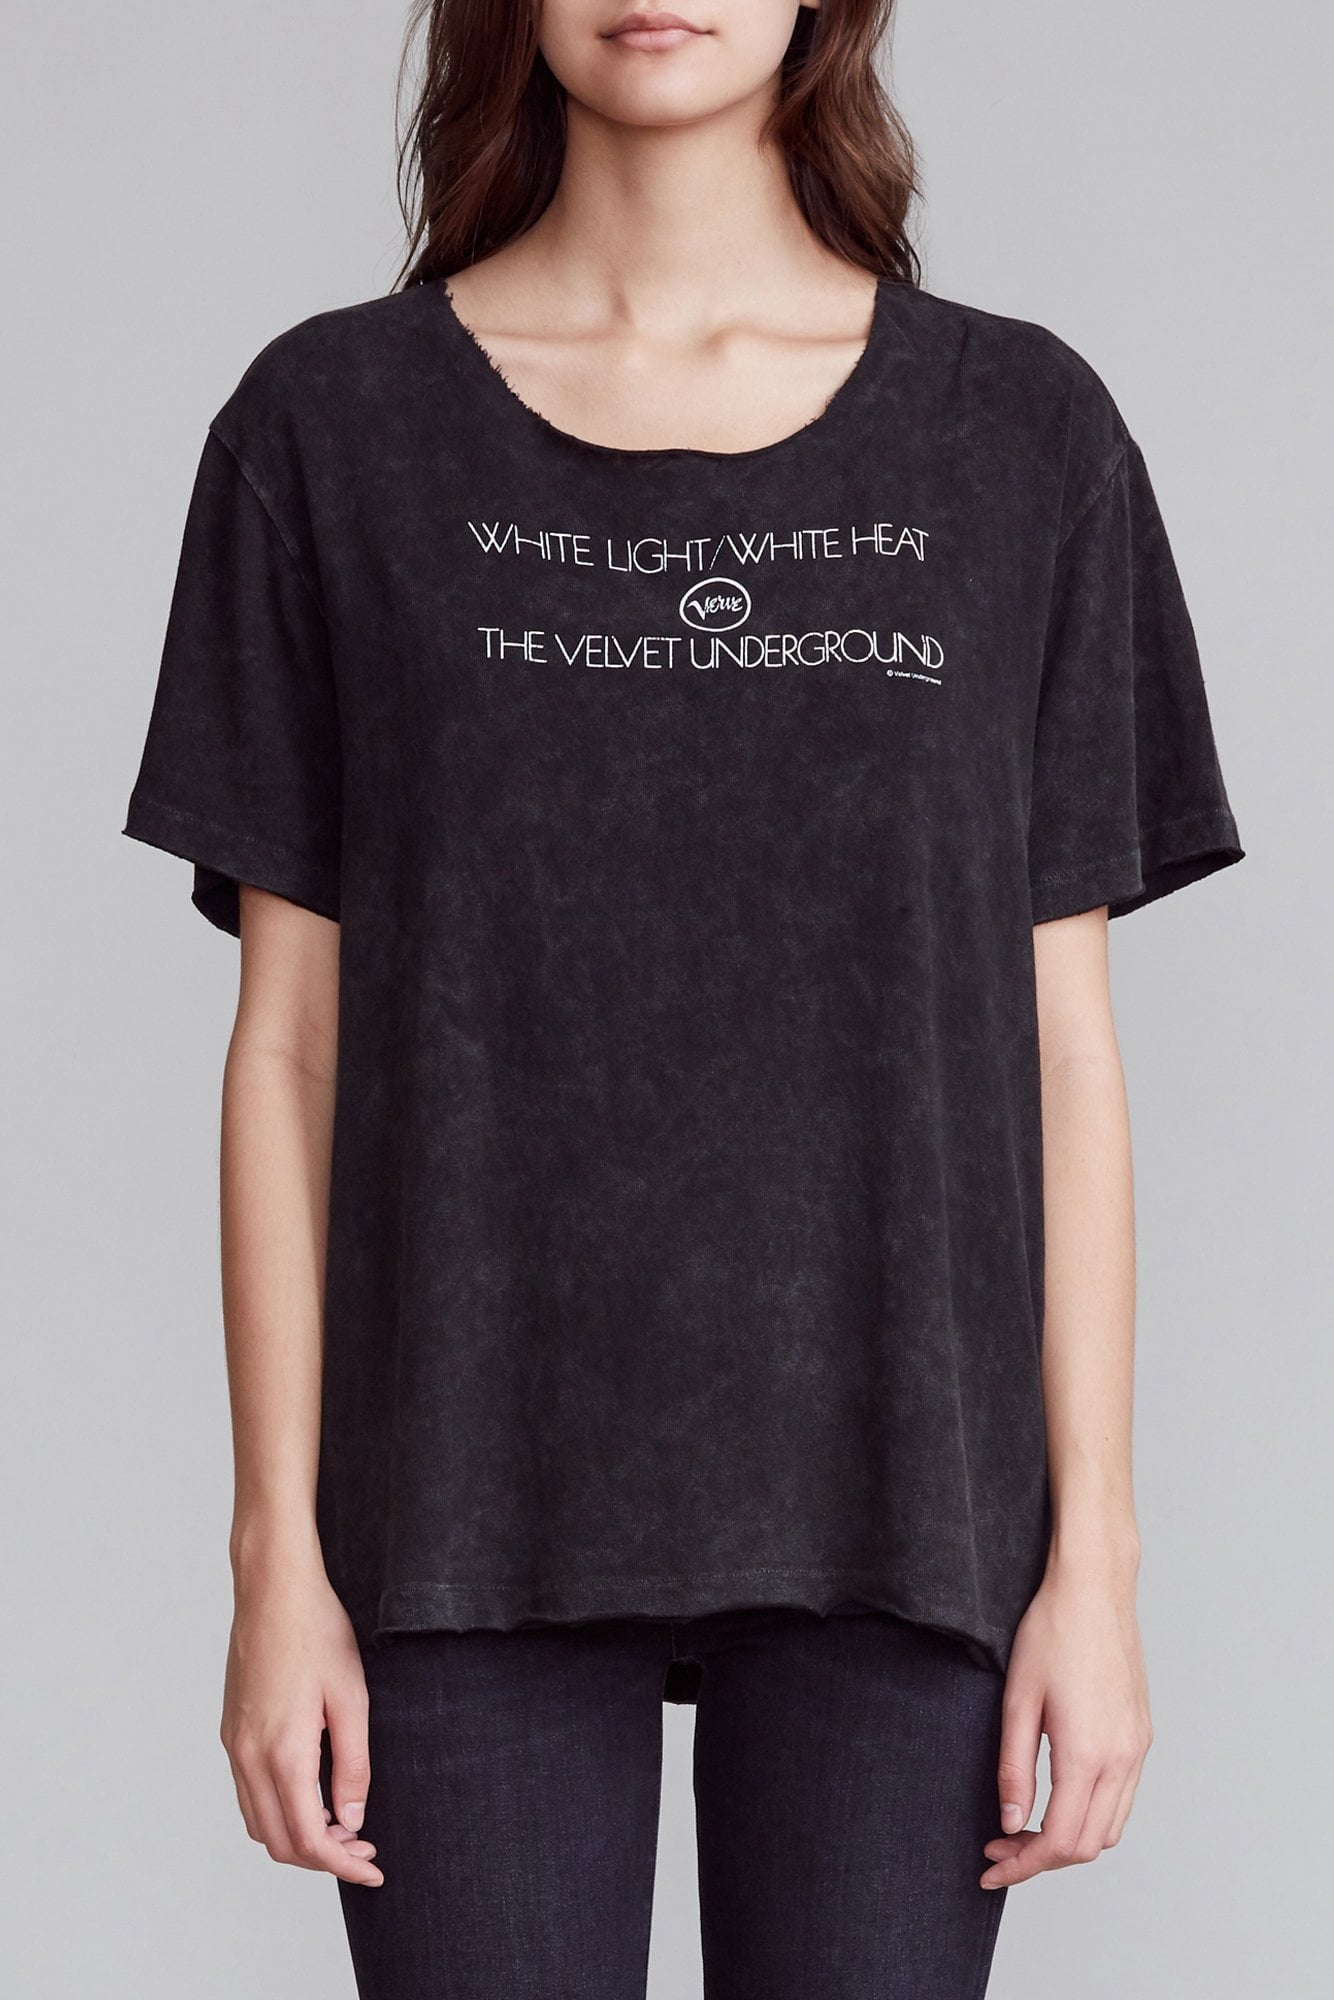 Velvet Underground White Light Rosie T